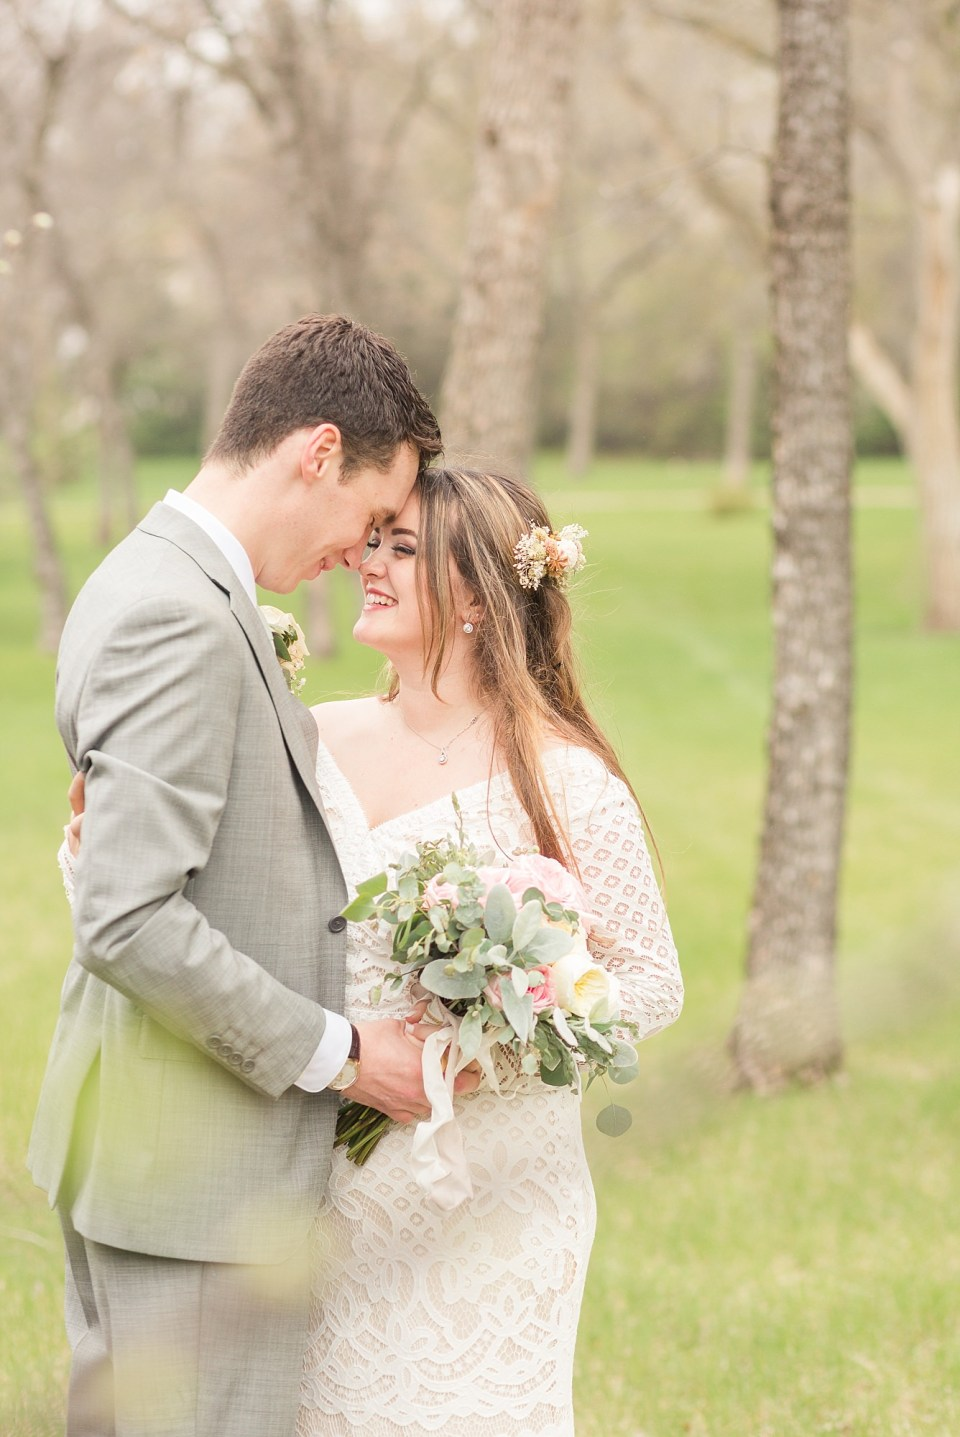 A bride and groom rest their foreheads together at the North Dakota Capital Grounds